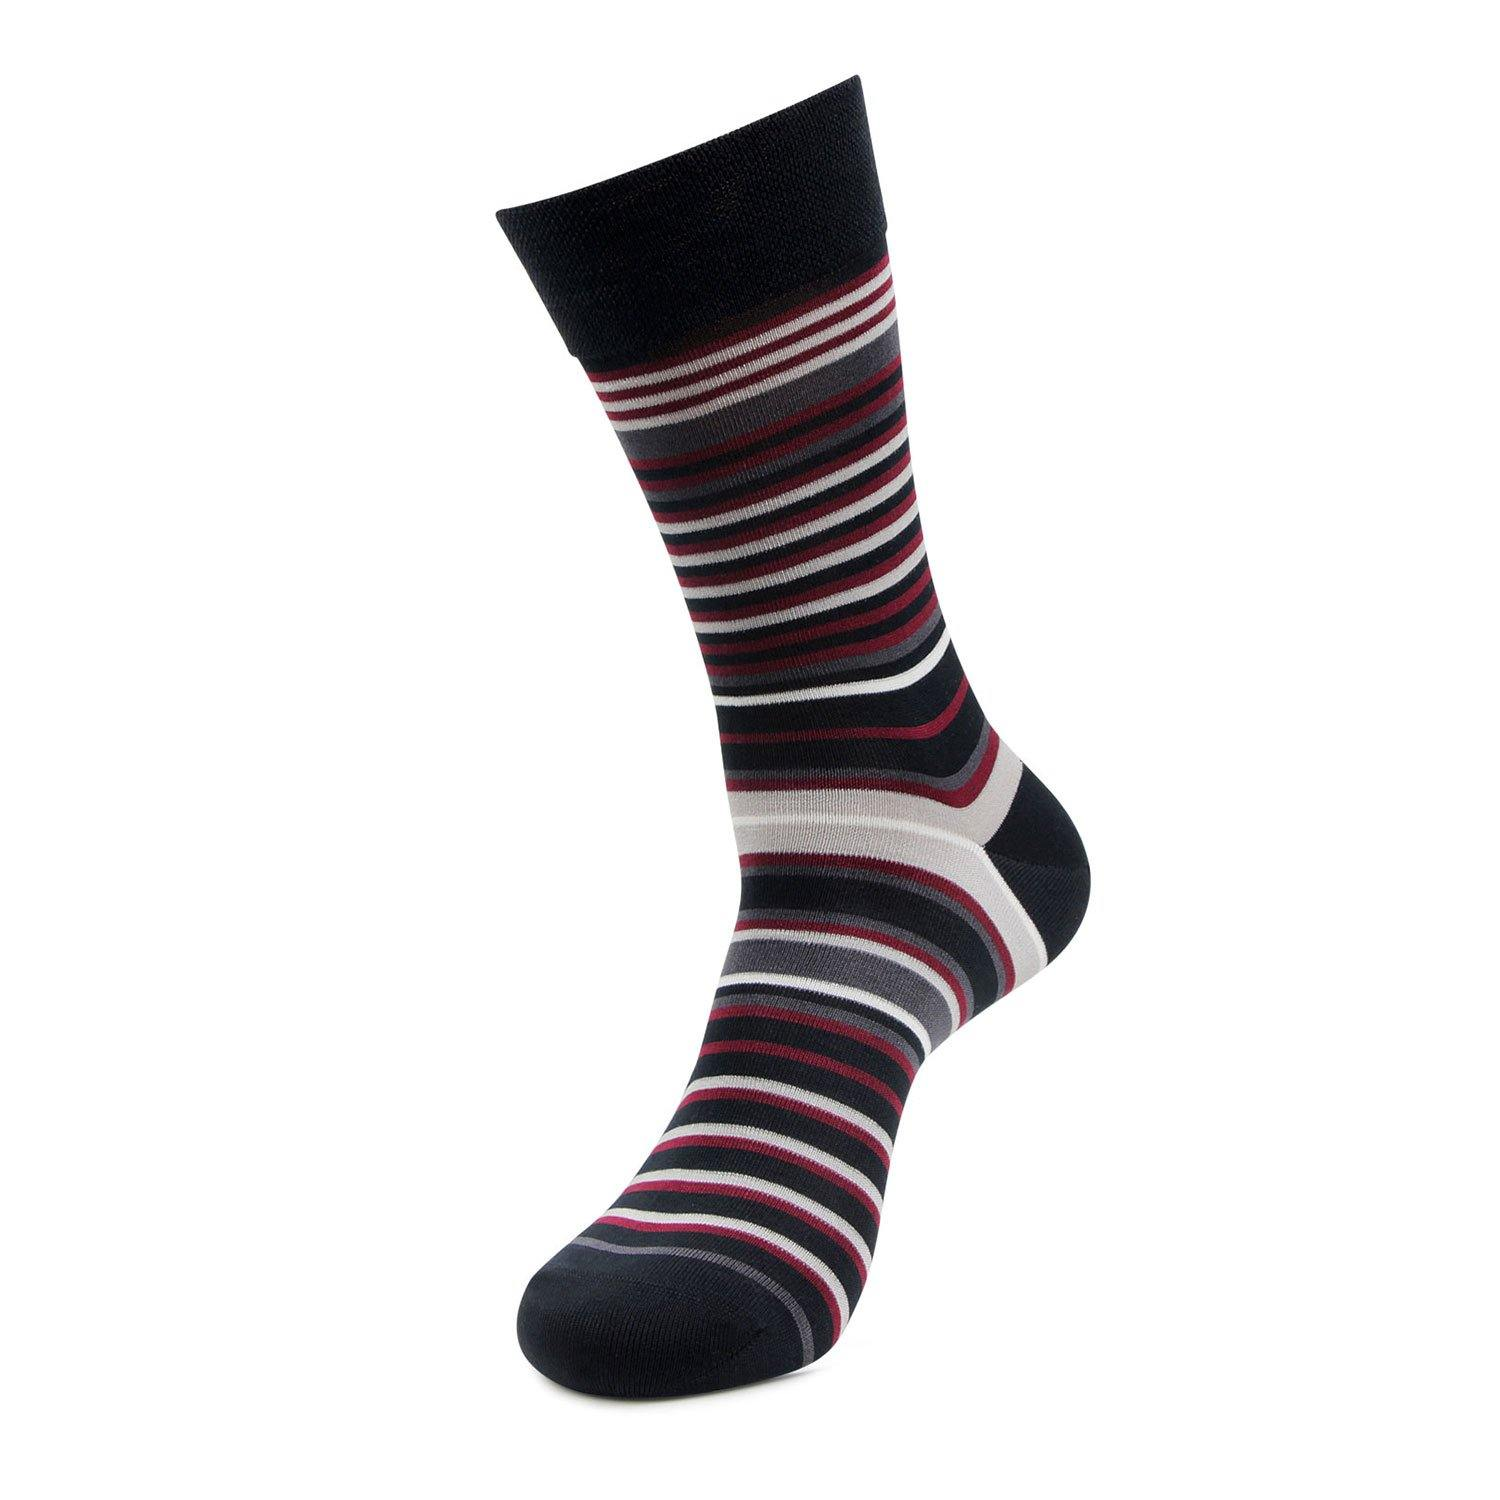 Men's Formal Signature Collection Full Length Stripe Socks (Maroon)